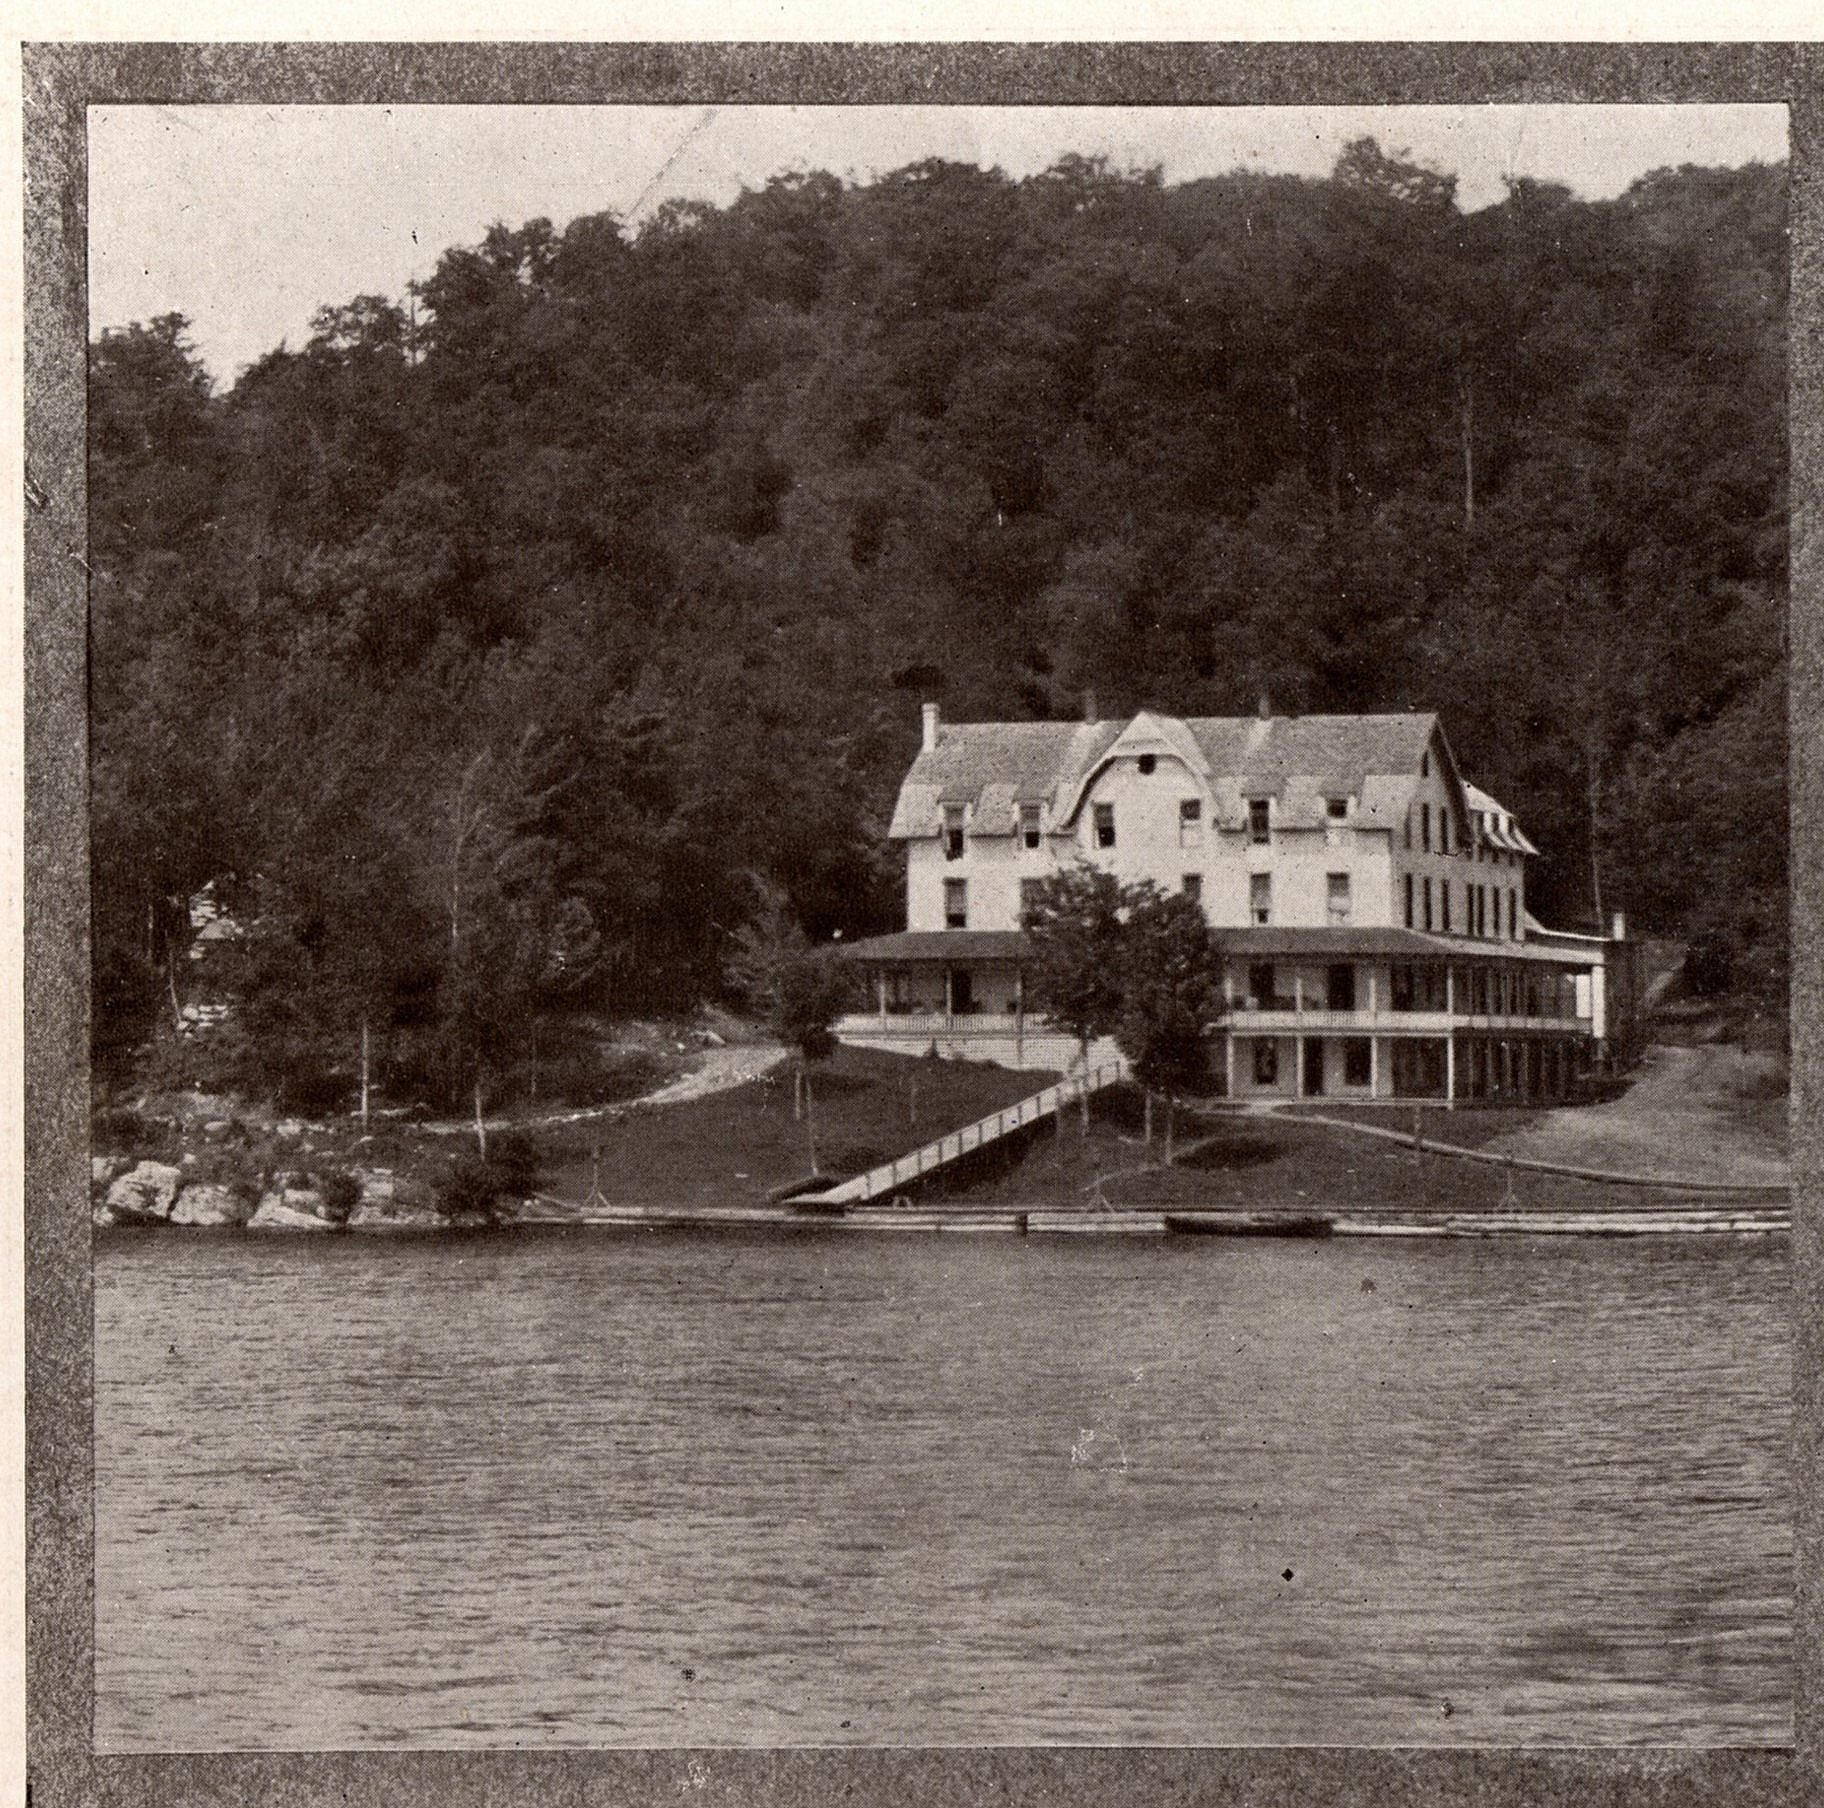 History Seventh Lake, Inlet and Its Hotel (Part II) - - The